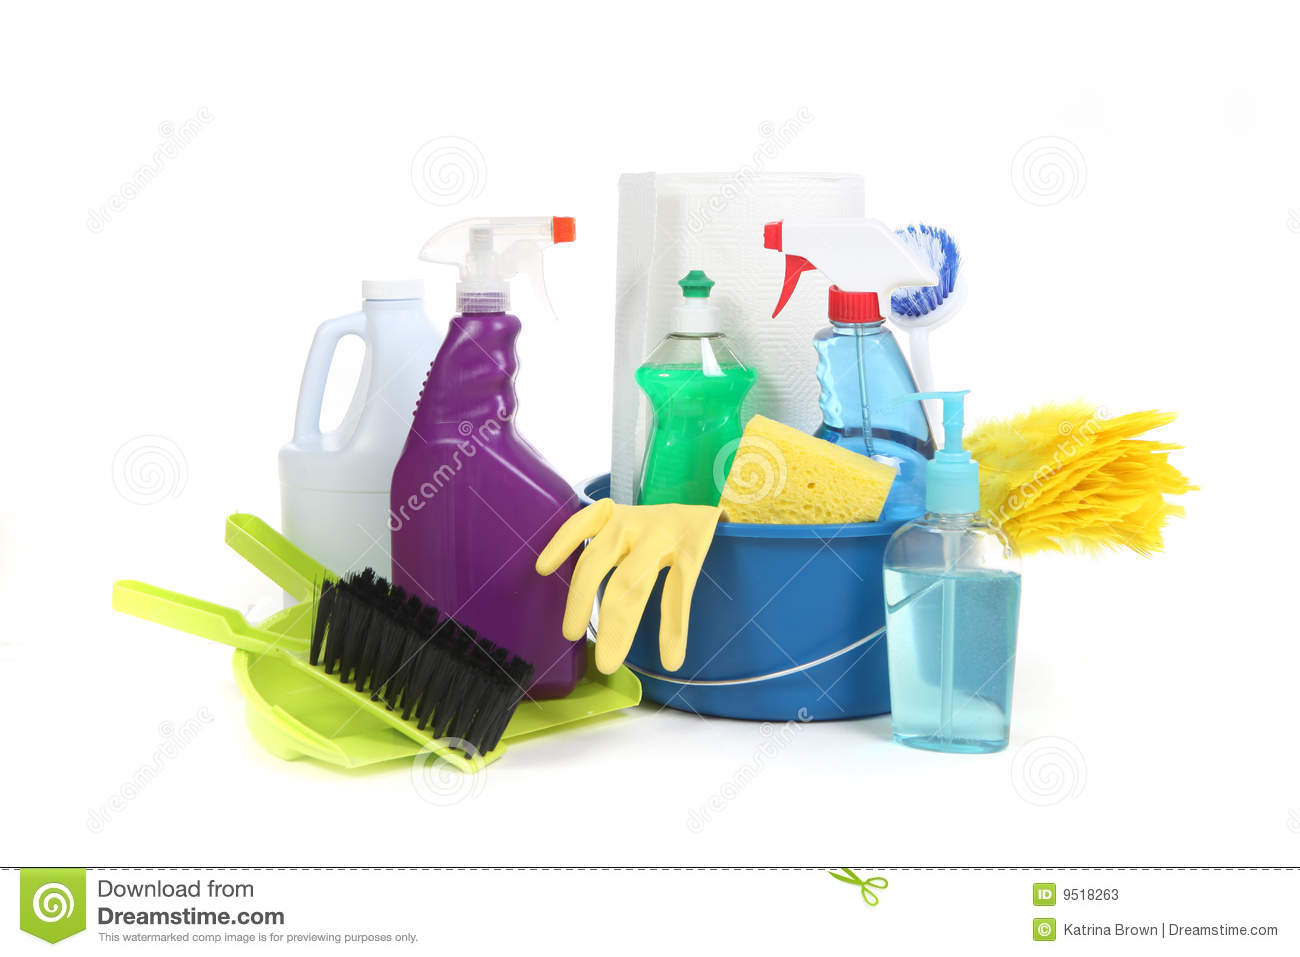 Household Items Used for Chores and Cleaning